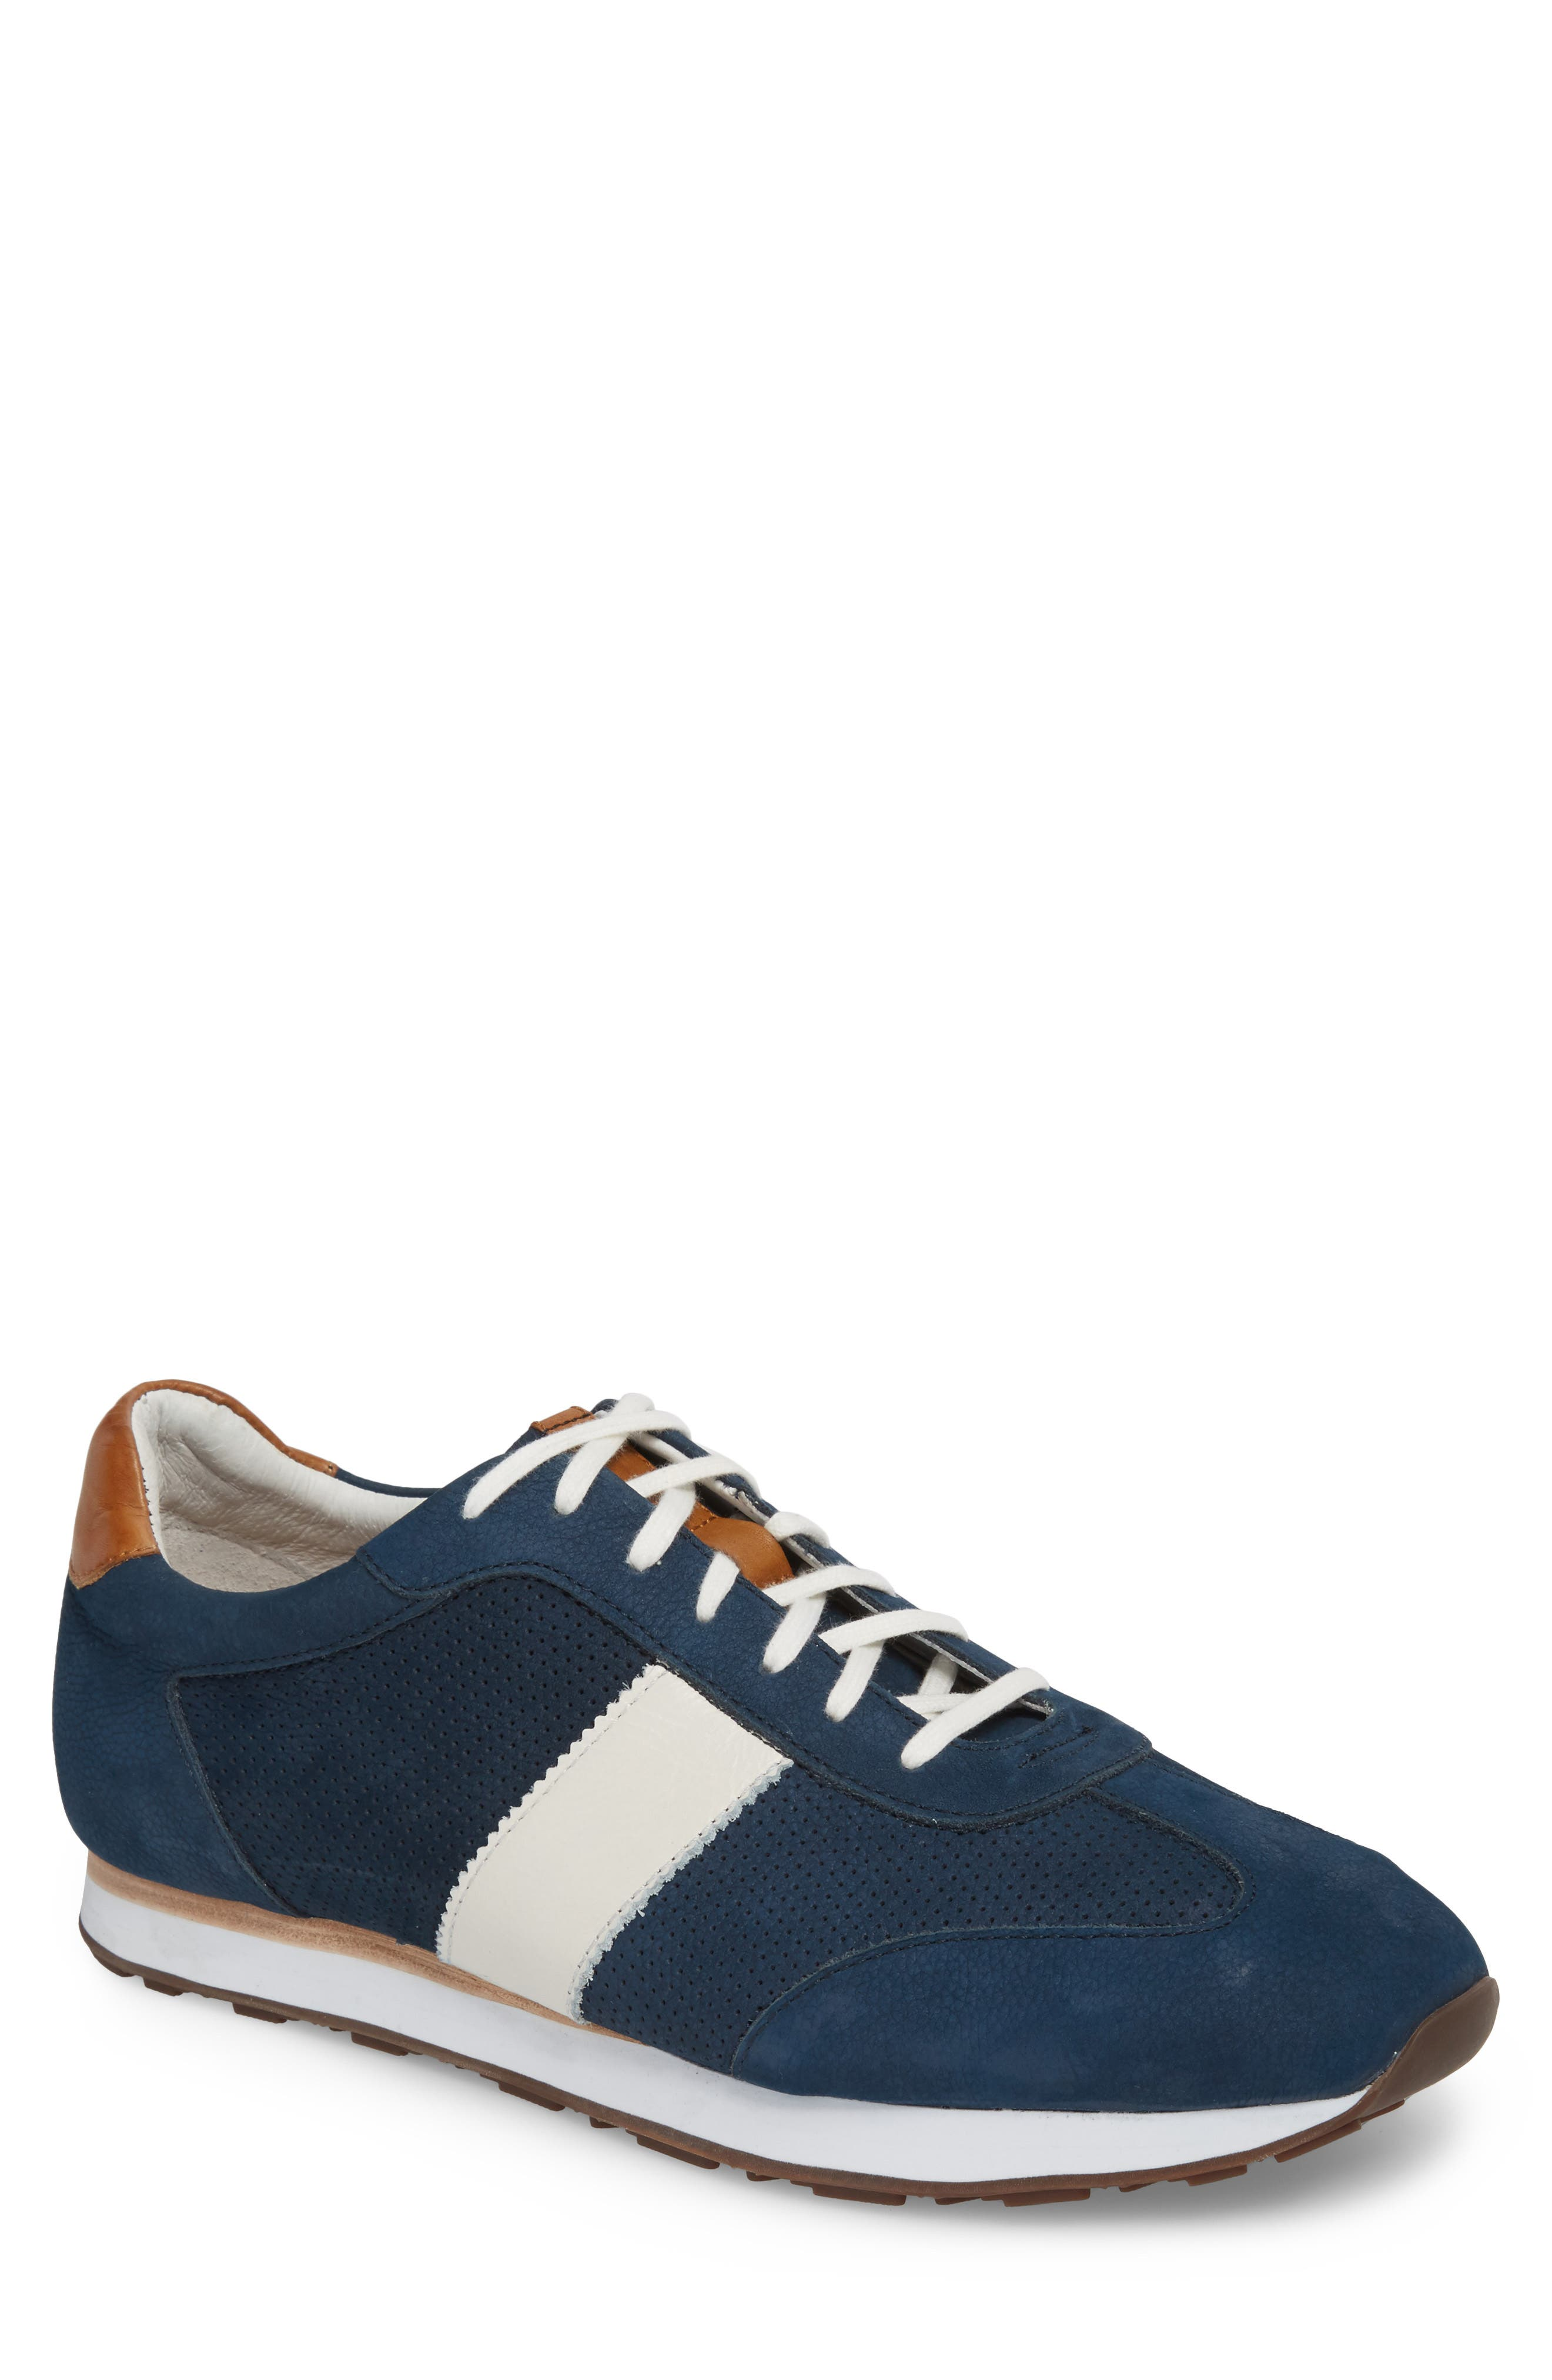 Malek Perforated Low Top Sneaker,                             Main thumbnail 1, color,                             Navy Nubuck Leather